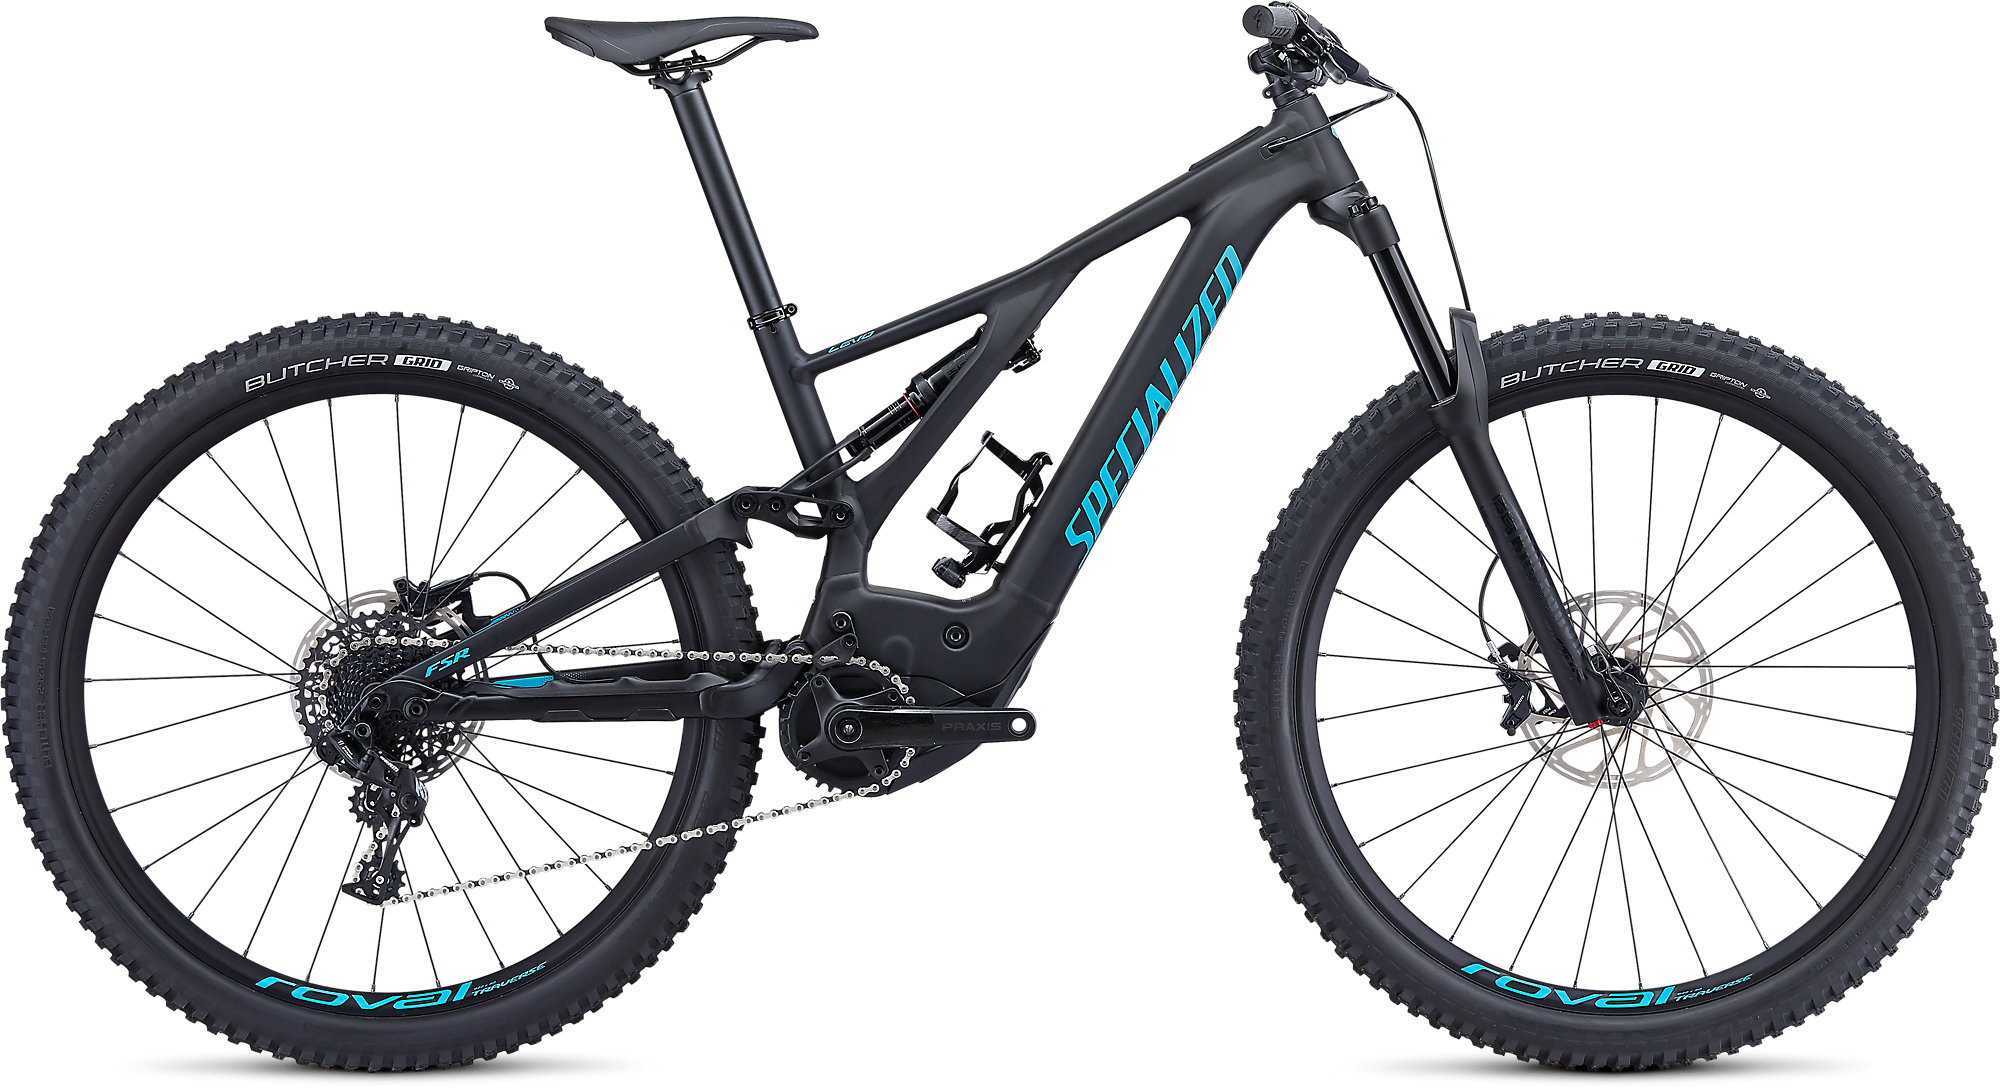 5d791daad46 2018 Specialized MEN'S TURBO LEVO FSR 6FATTIE/29 - Specialized ...